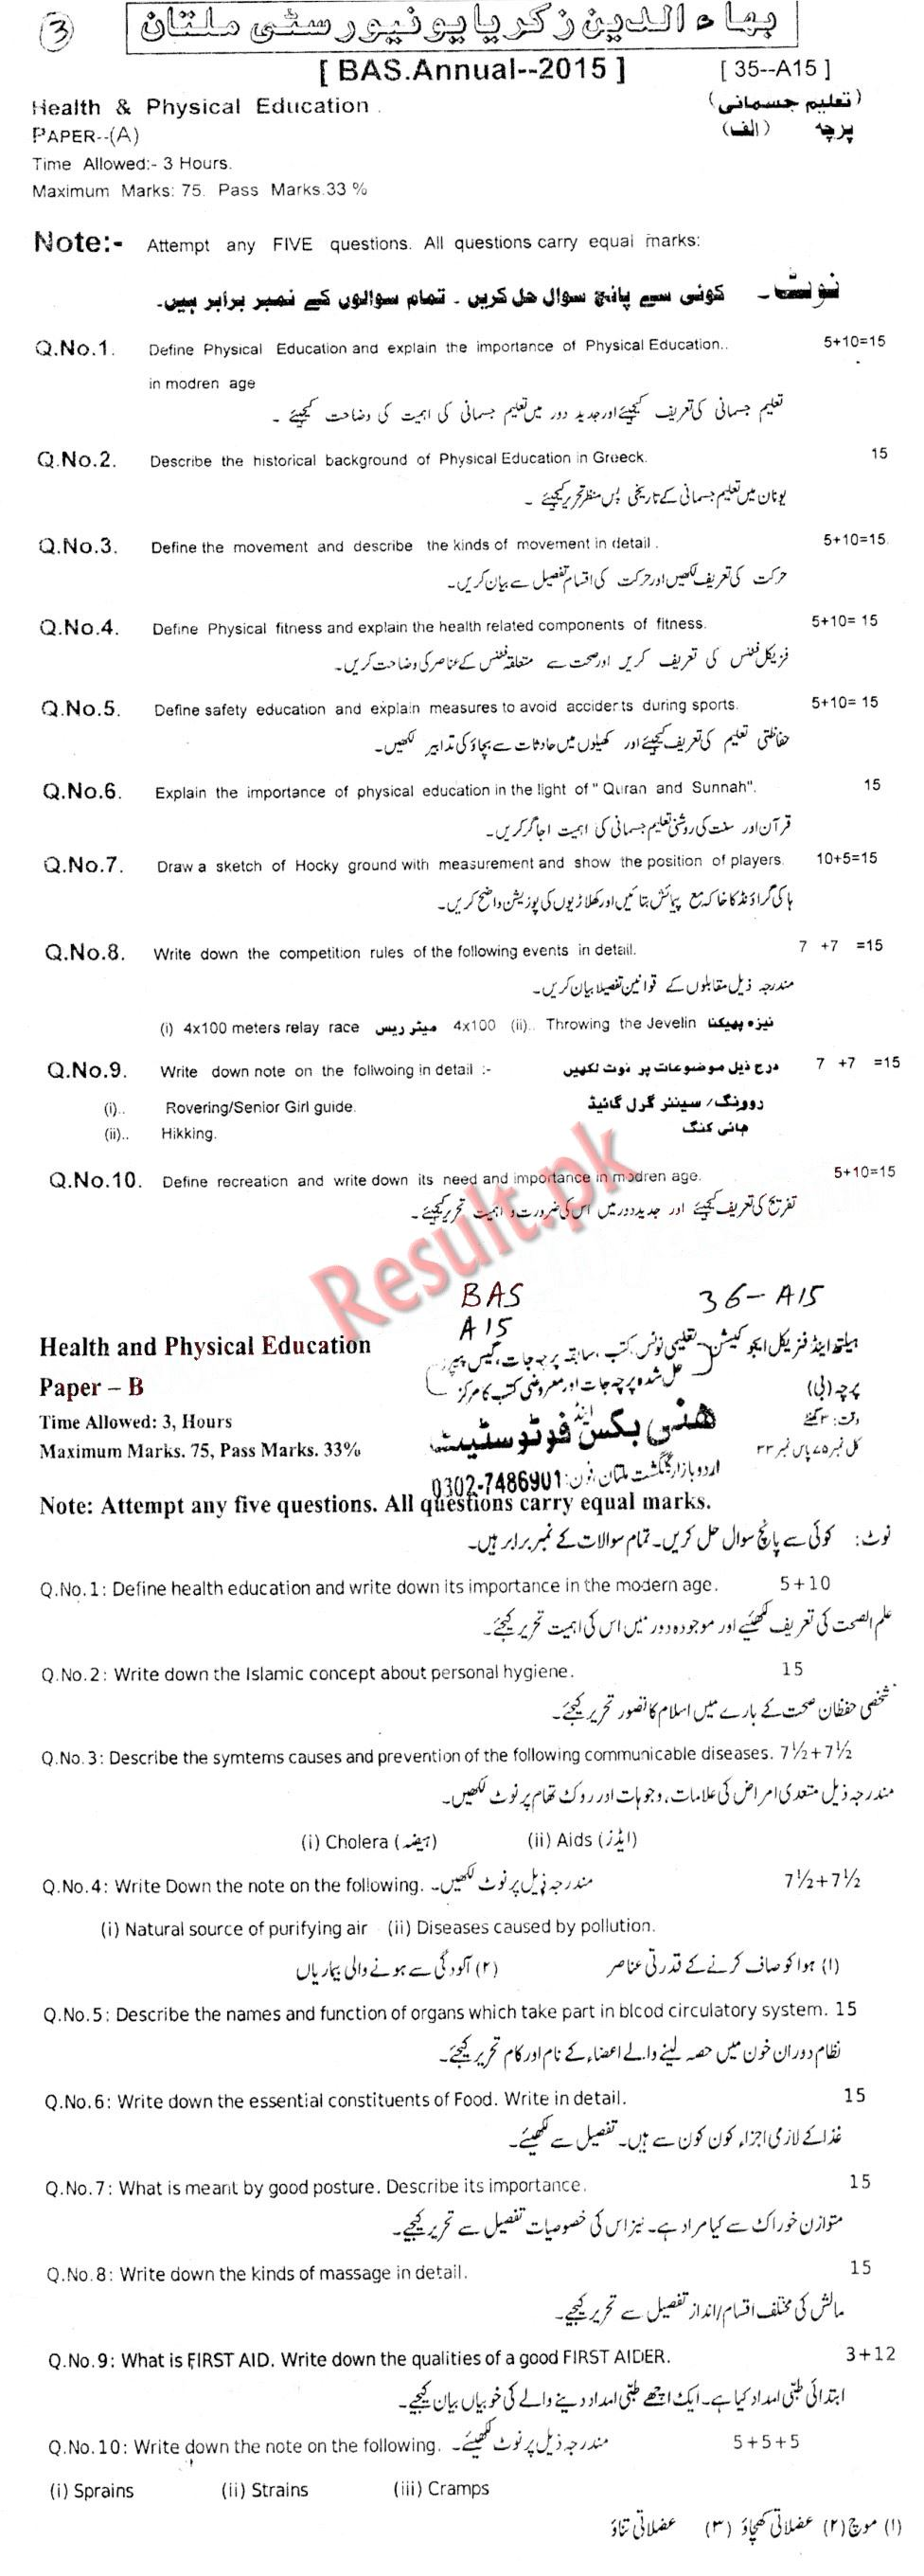 Bahauddin Zakariya University Past Papers 2019, bzu Past & Model Papers